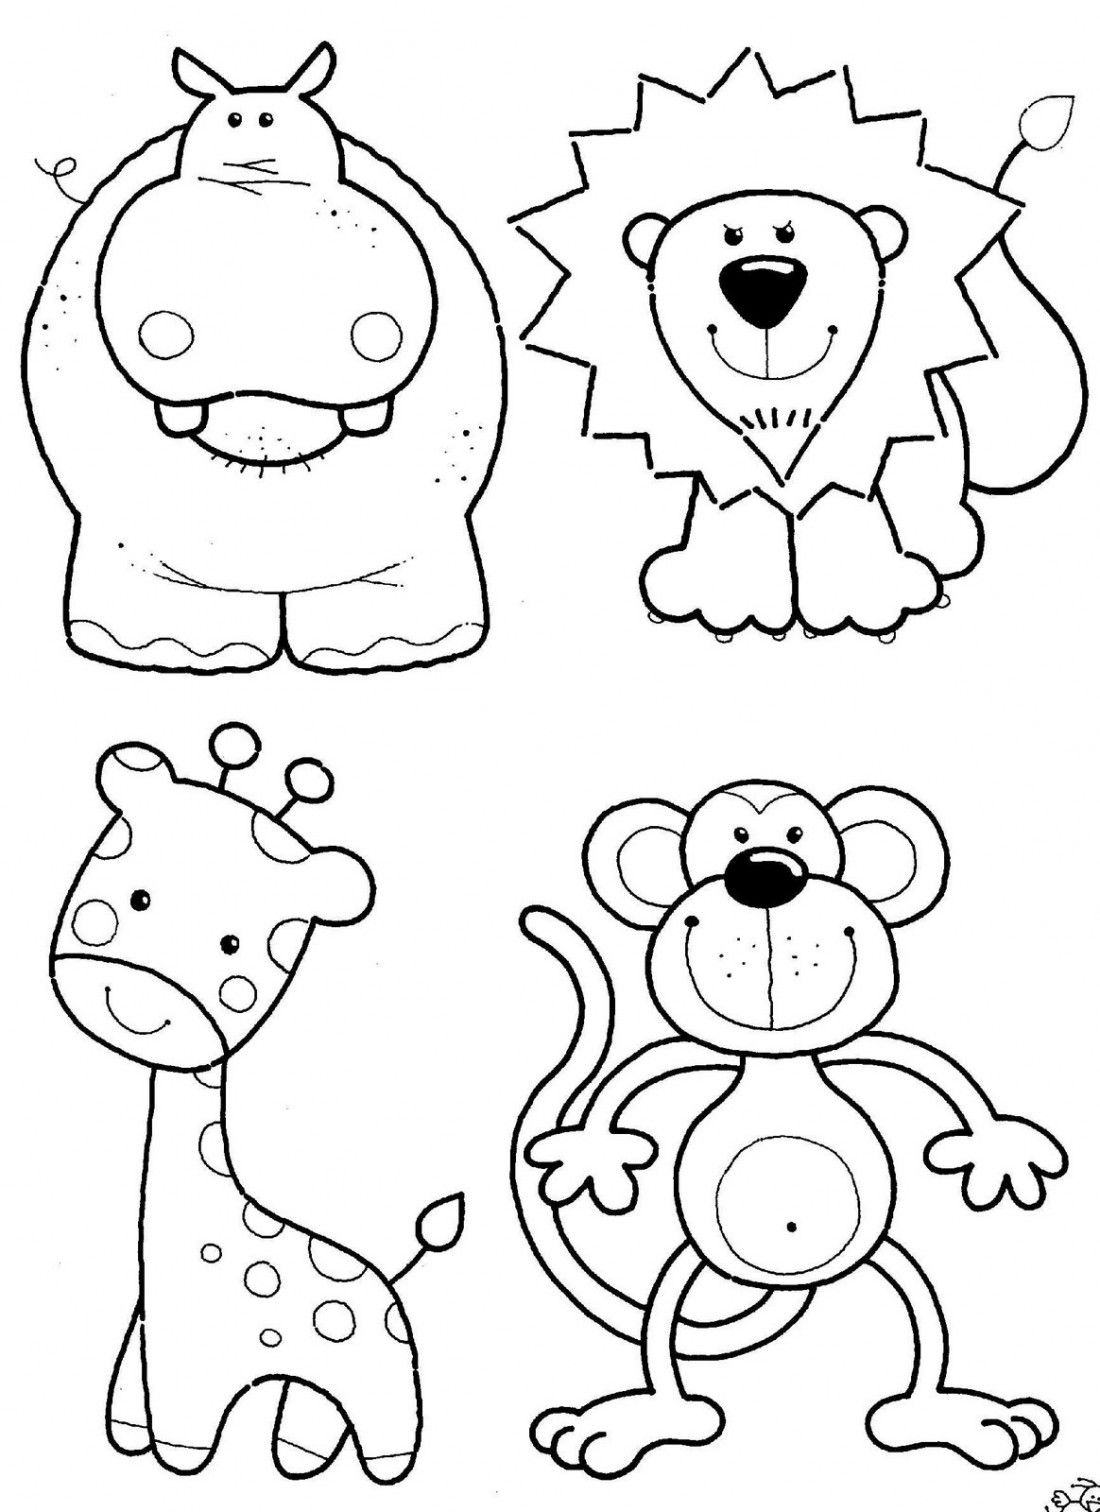 free animal coloring pages kids id color or paint these and use them - Coloring Activities For Children